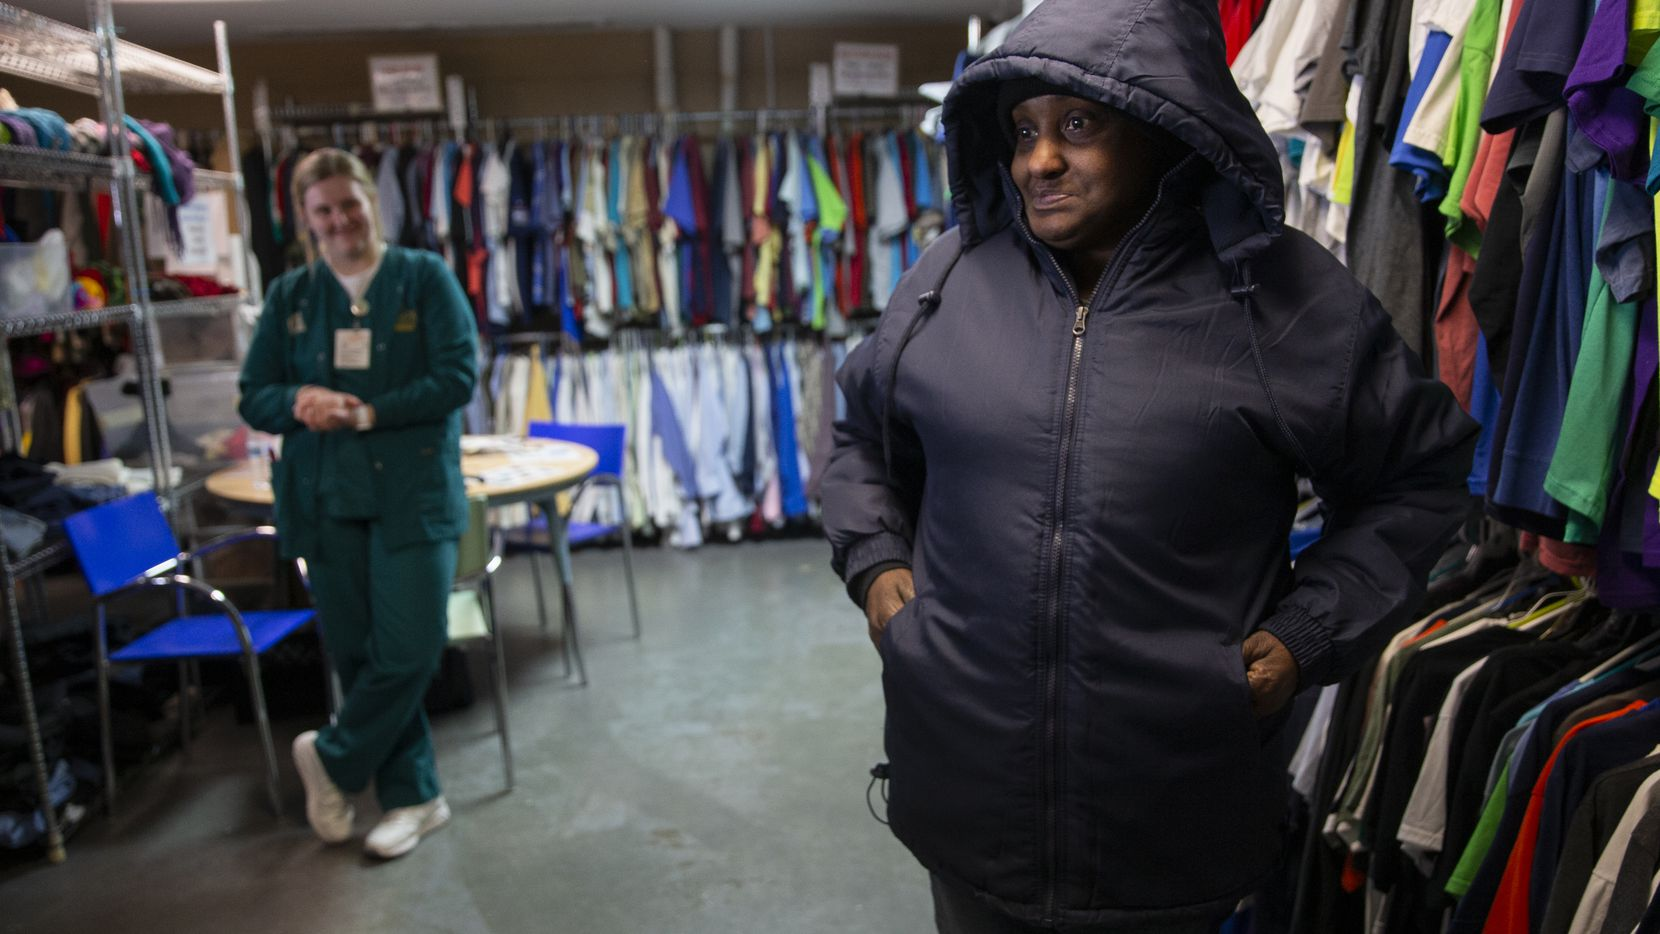 Cecelia Nash  tries on her new jacket from the Cornerstone Baptist Church's Clothes Closet on Dec. 5, 2019 in Dallas. Cornerstone Community Development Corp. was one of 23 nonprofits that received funds from The Dallas Morning News Charities campaign.